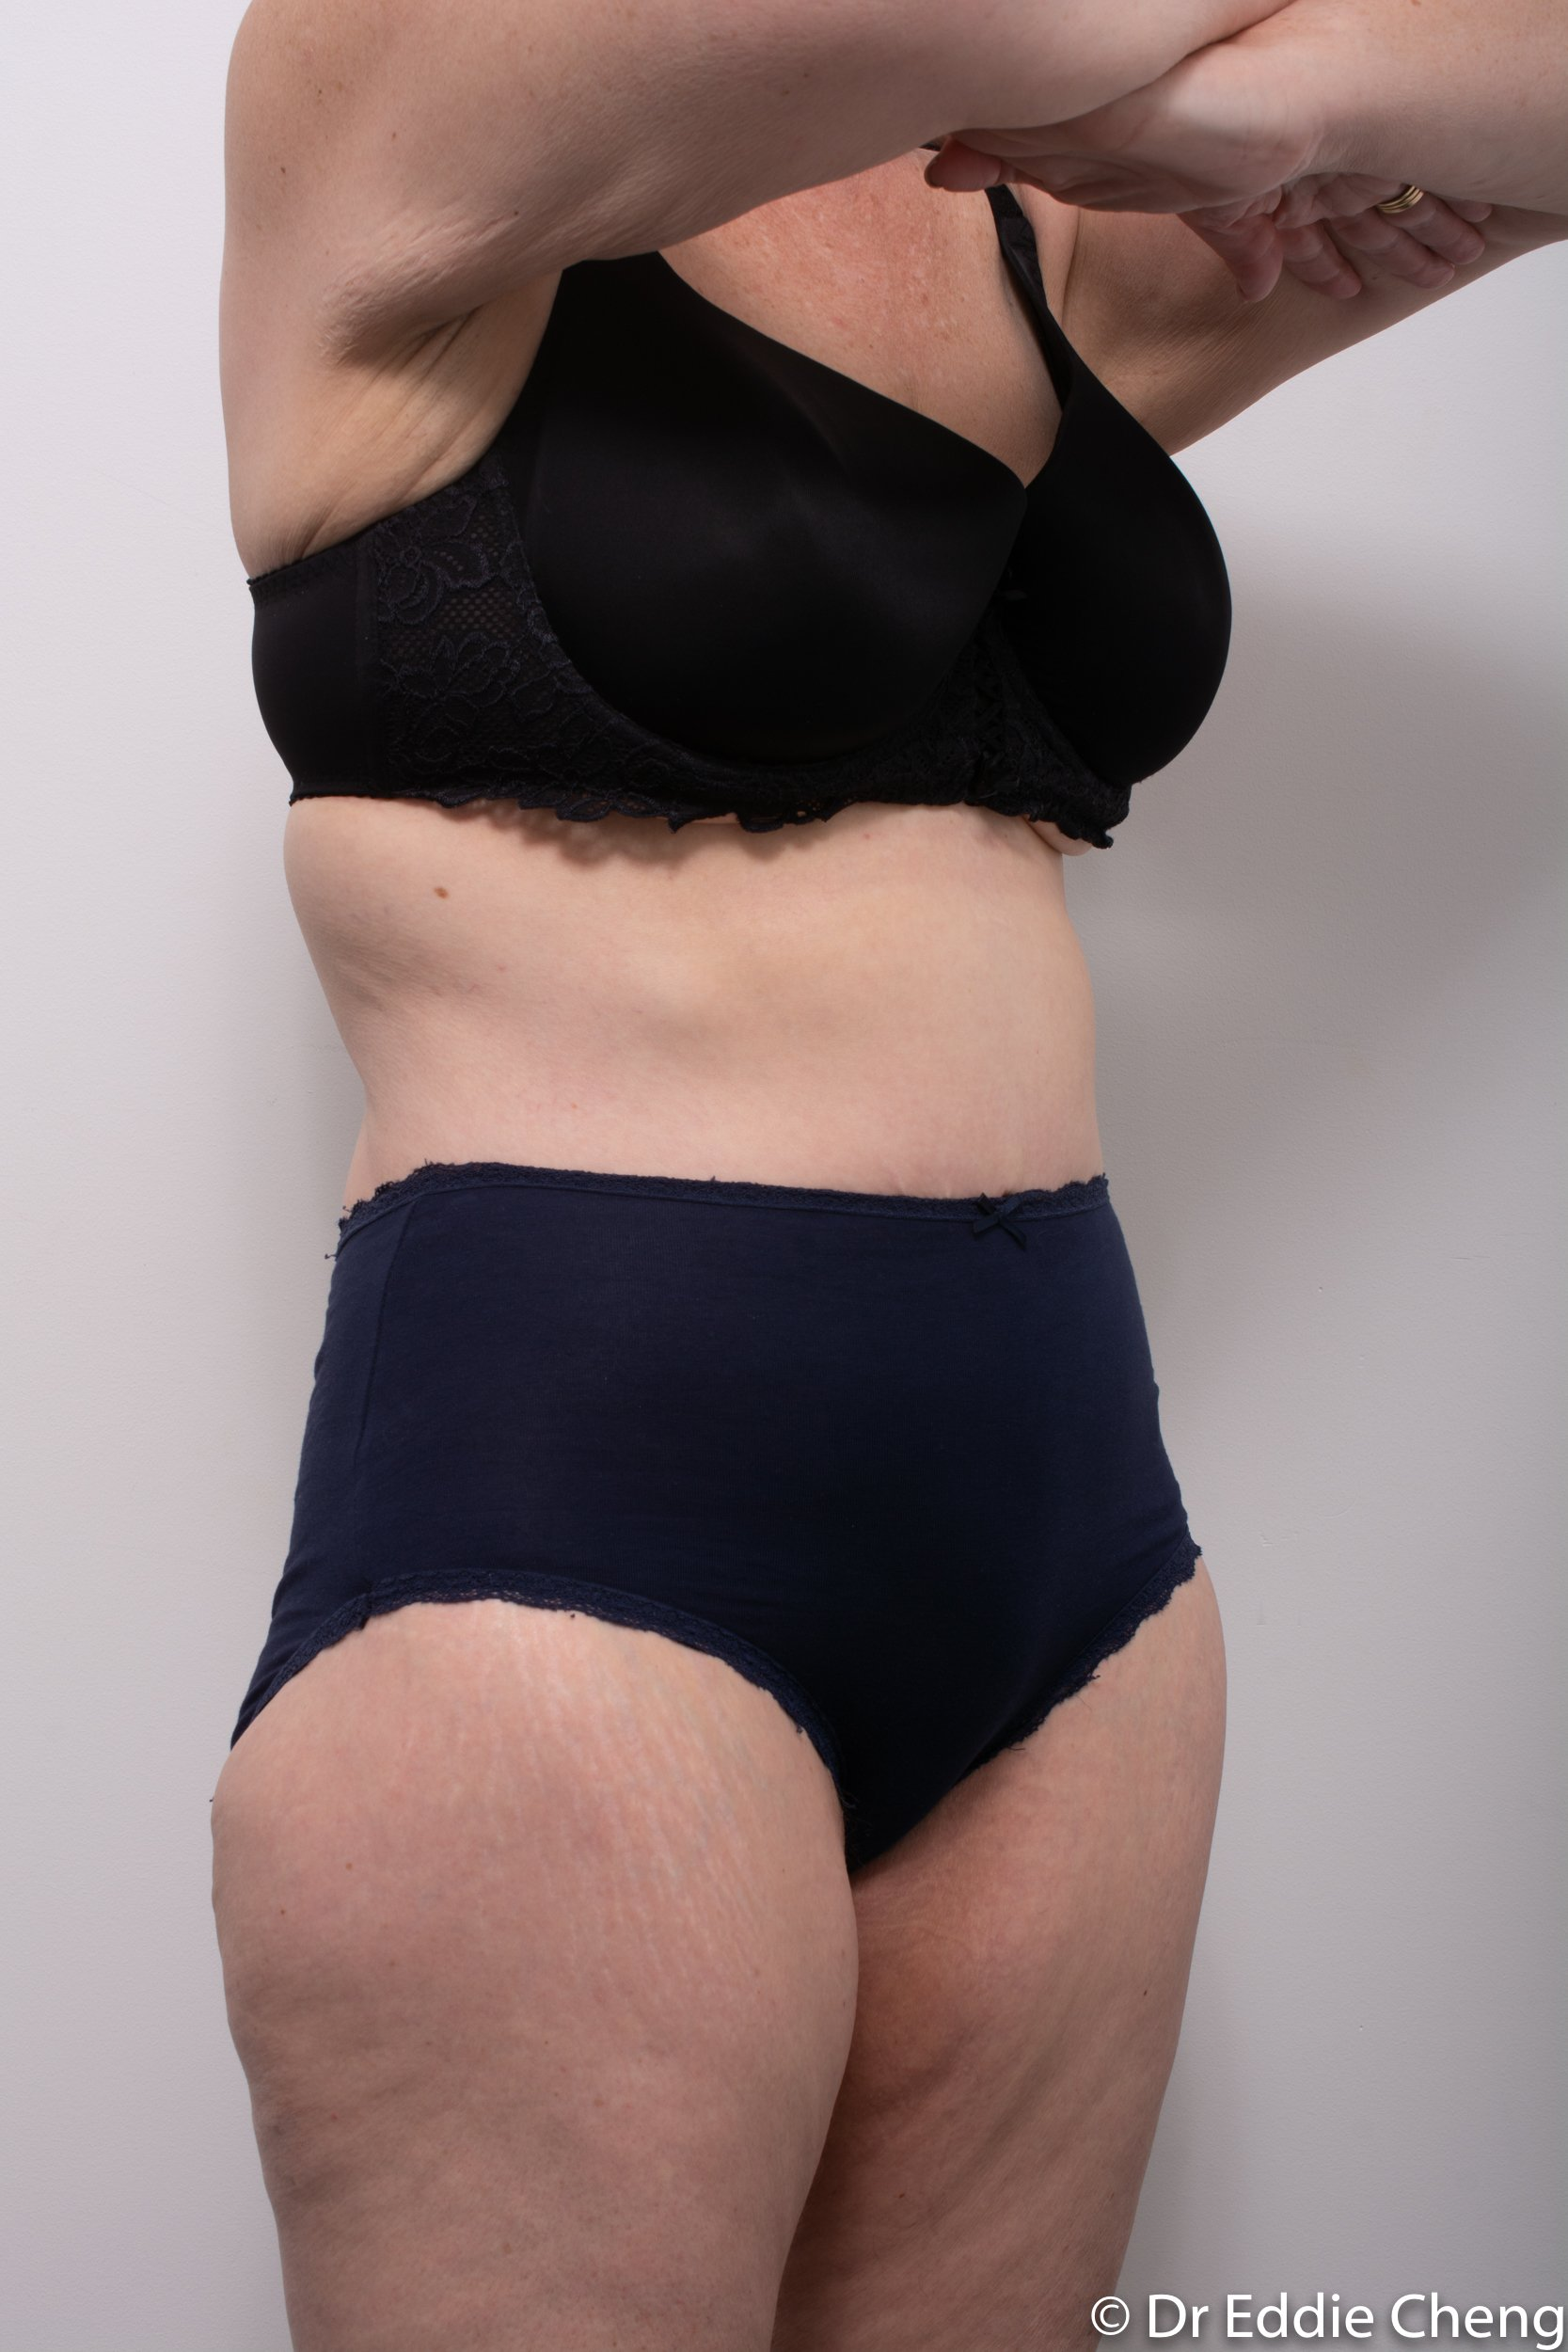 Body lift circumferential dr eddie cheng brisbane surgeon pre and post operative images -9